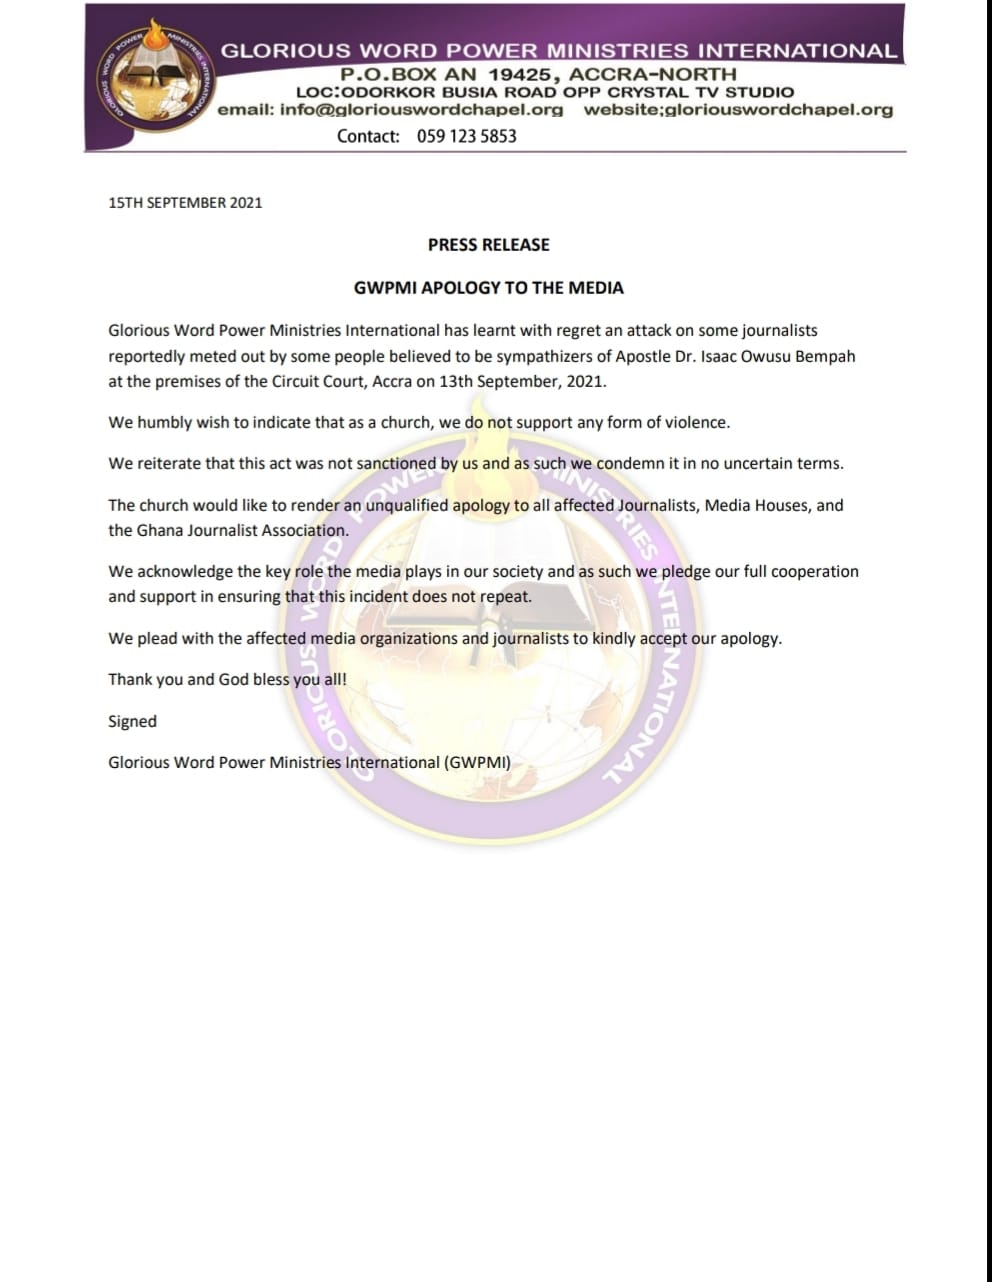 May be an image of text that says 'email: GLORIOUS WORD POWER MINISTRIES INTERNATIONAL P.O.BOX AN 19425, Contact: 059 5853 STUDIO 15THSEPTEMBER2021 PRESS RELEASE APOLOGY Glorious reportedly meted premises THE MEDIA 1 has learnt regret on believed Apostle Dr. Circuit Court, Accra 13th September, 2021. We humbly wish indicate thata church, Owusu Bempah not support any form fviolence. The church would like the Ghana Journalist render condemn itin unqualified apology terms. acknowledge ensuring the affected Journalists, Media Houses, and plays We plead with such we pledge our full cooperation affected media organizations and journalists all! Signed kindly accept apology. Glorious Word Power Ministries International (GWPMI)'